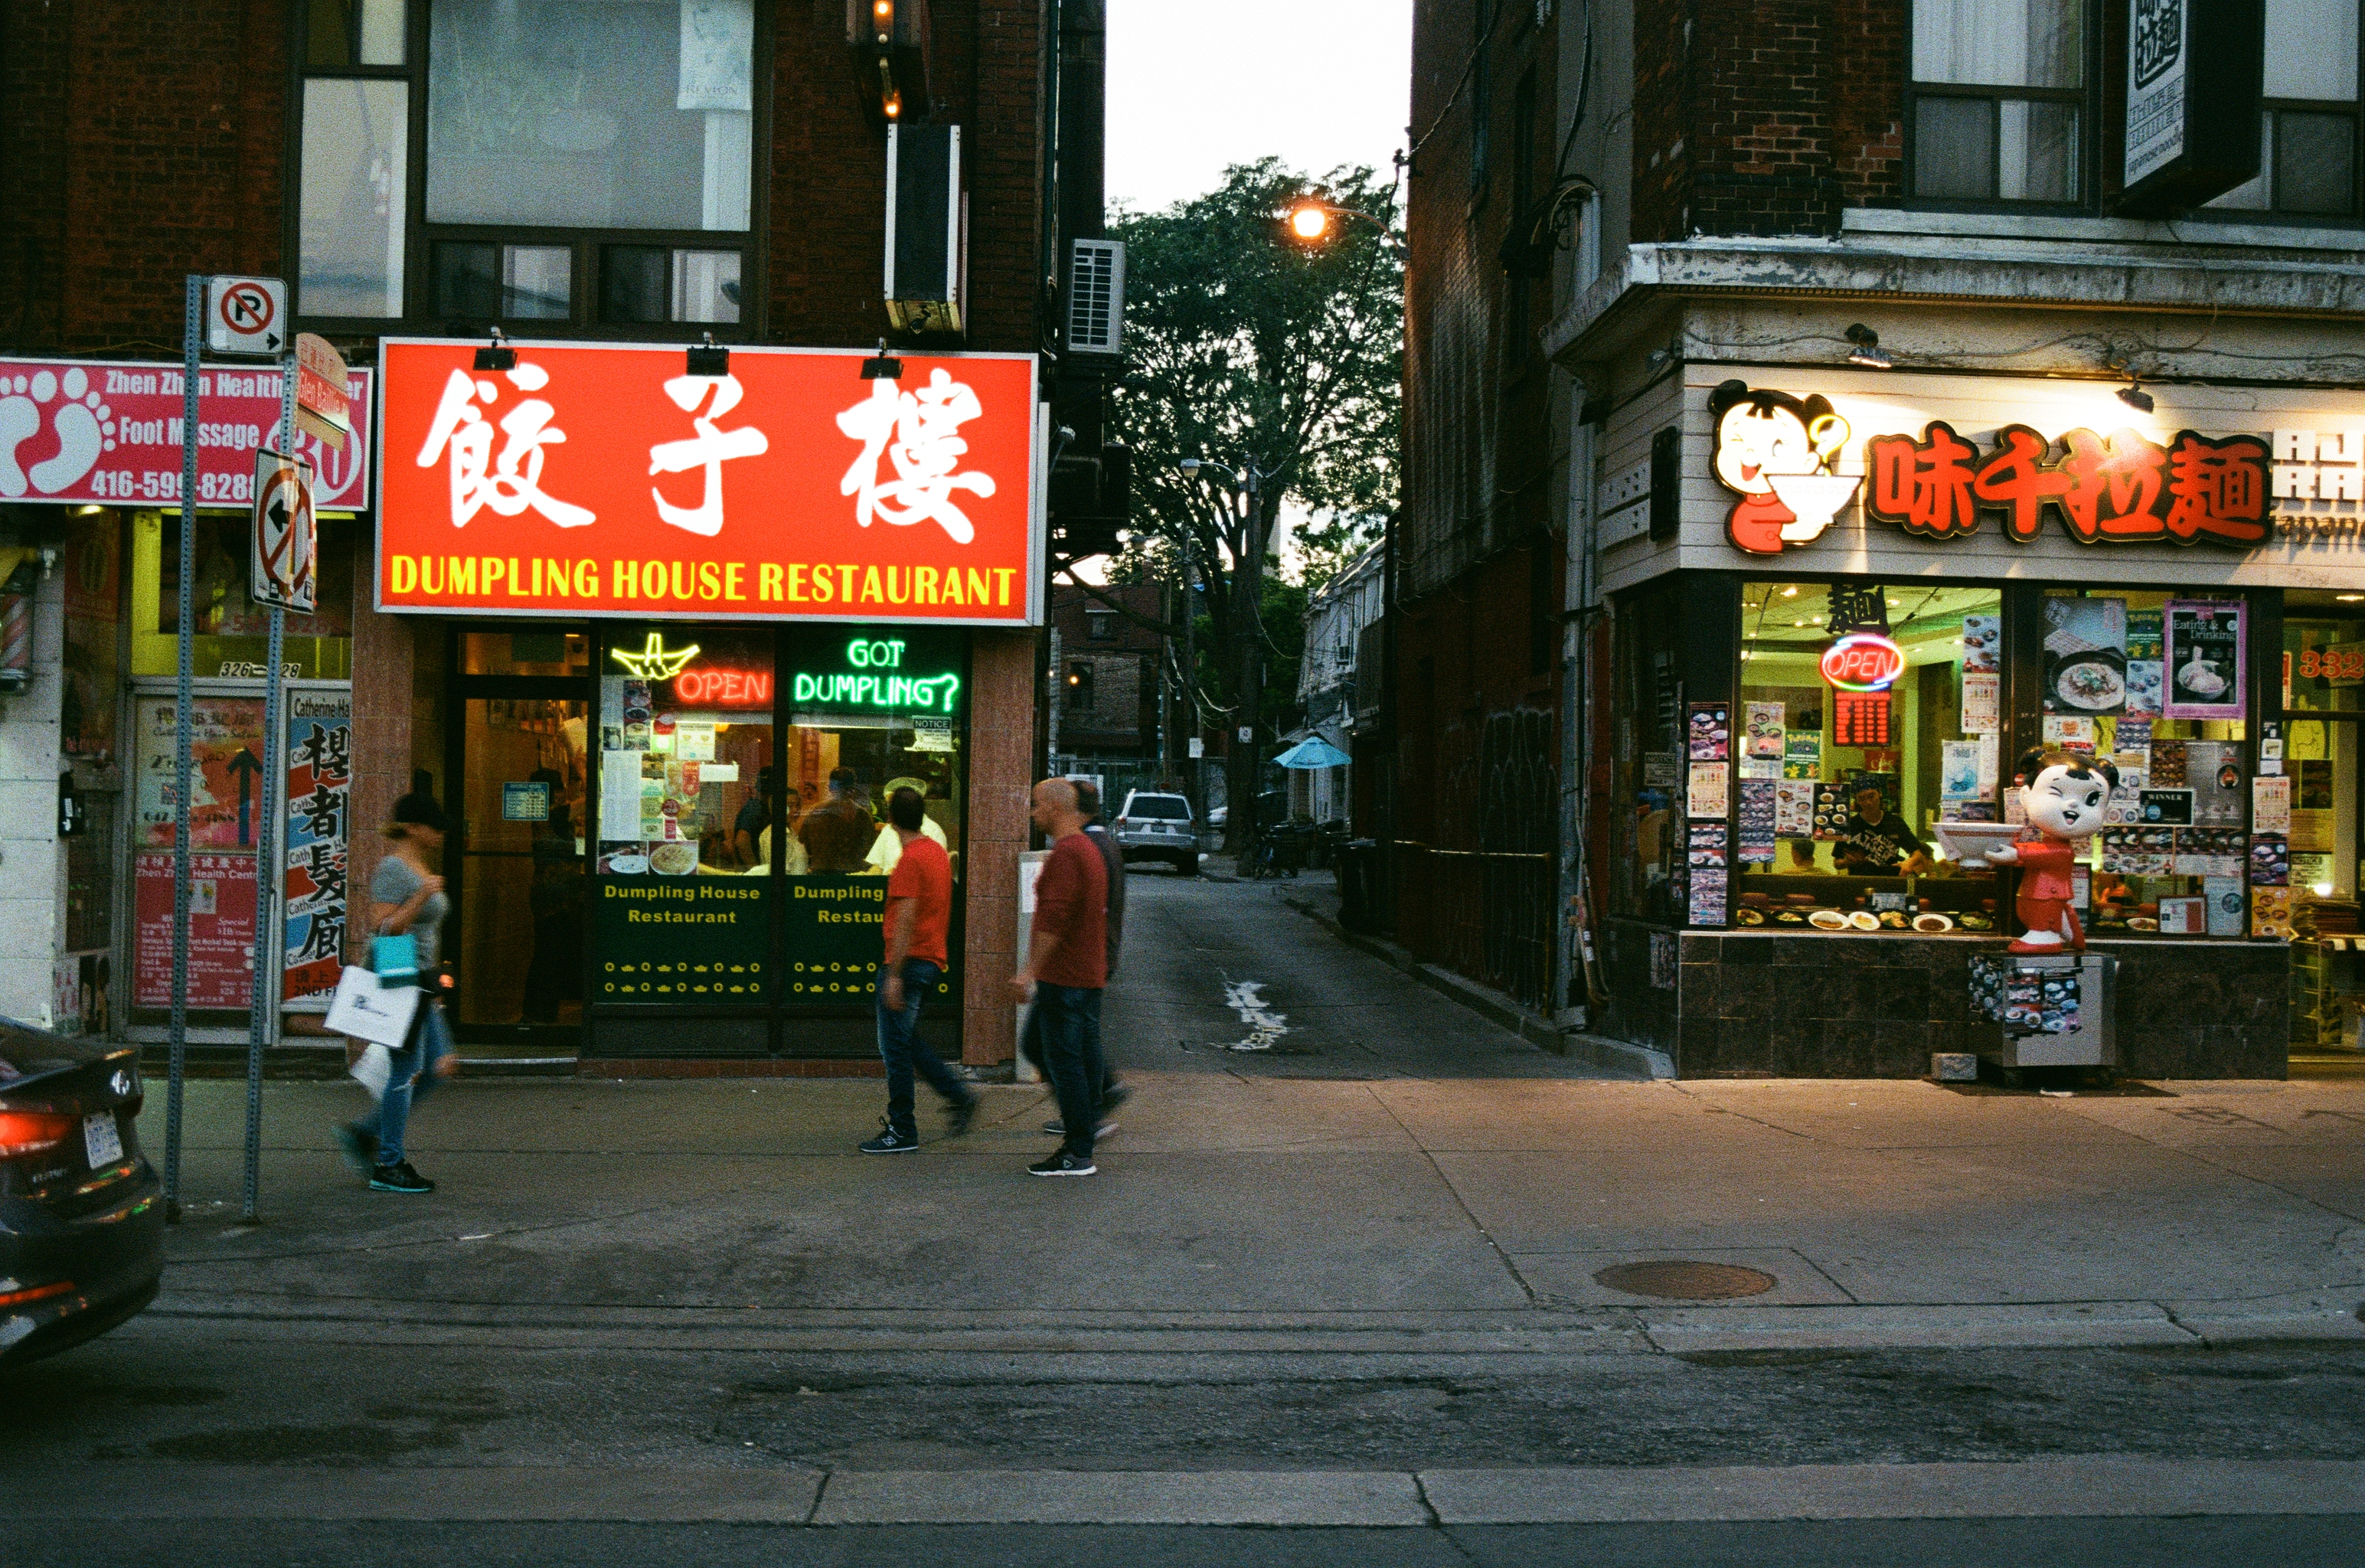 Chinatown has a mad special place in my heart (6/8)